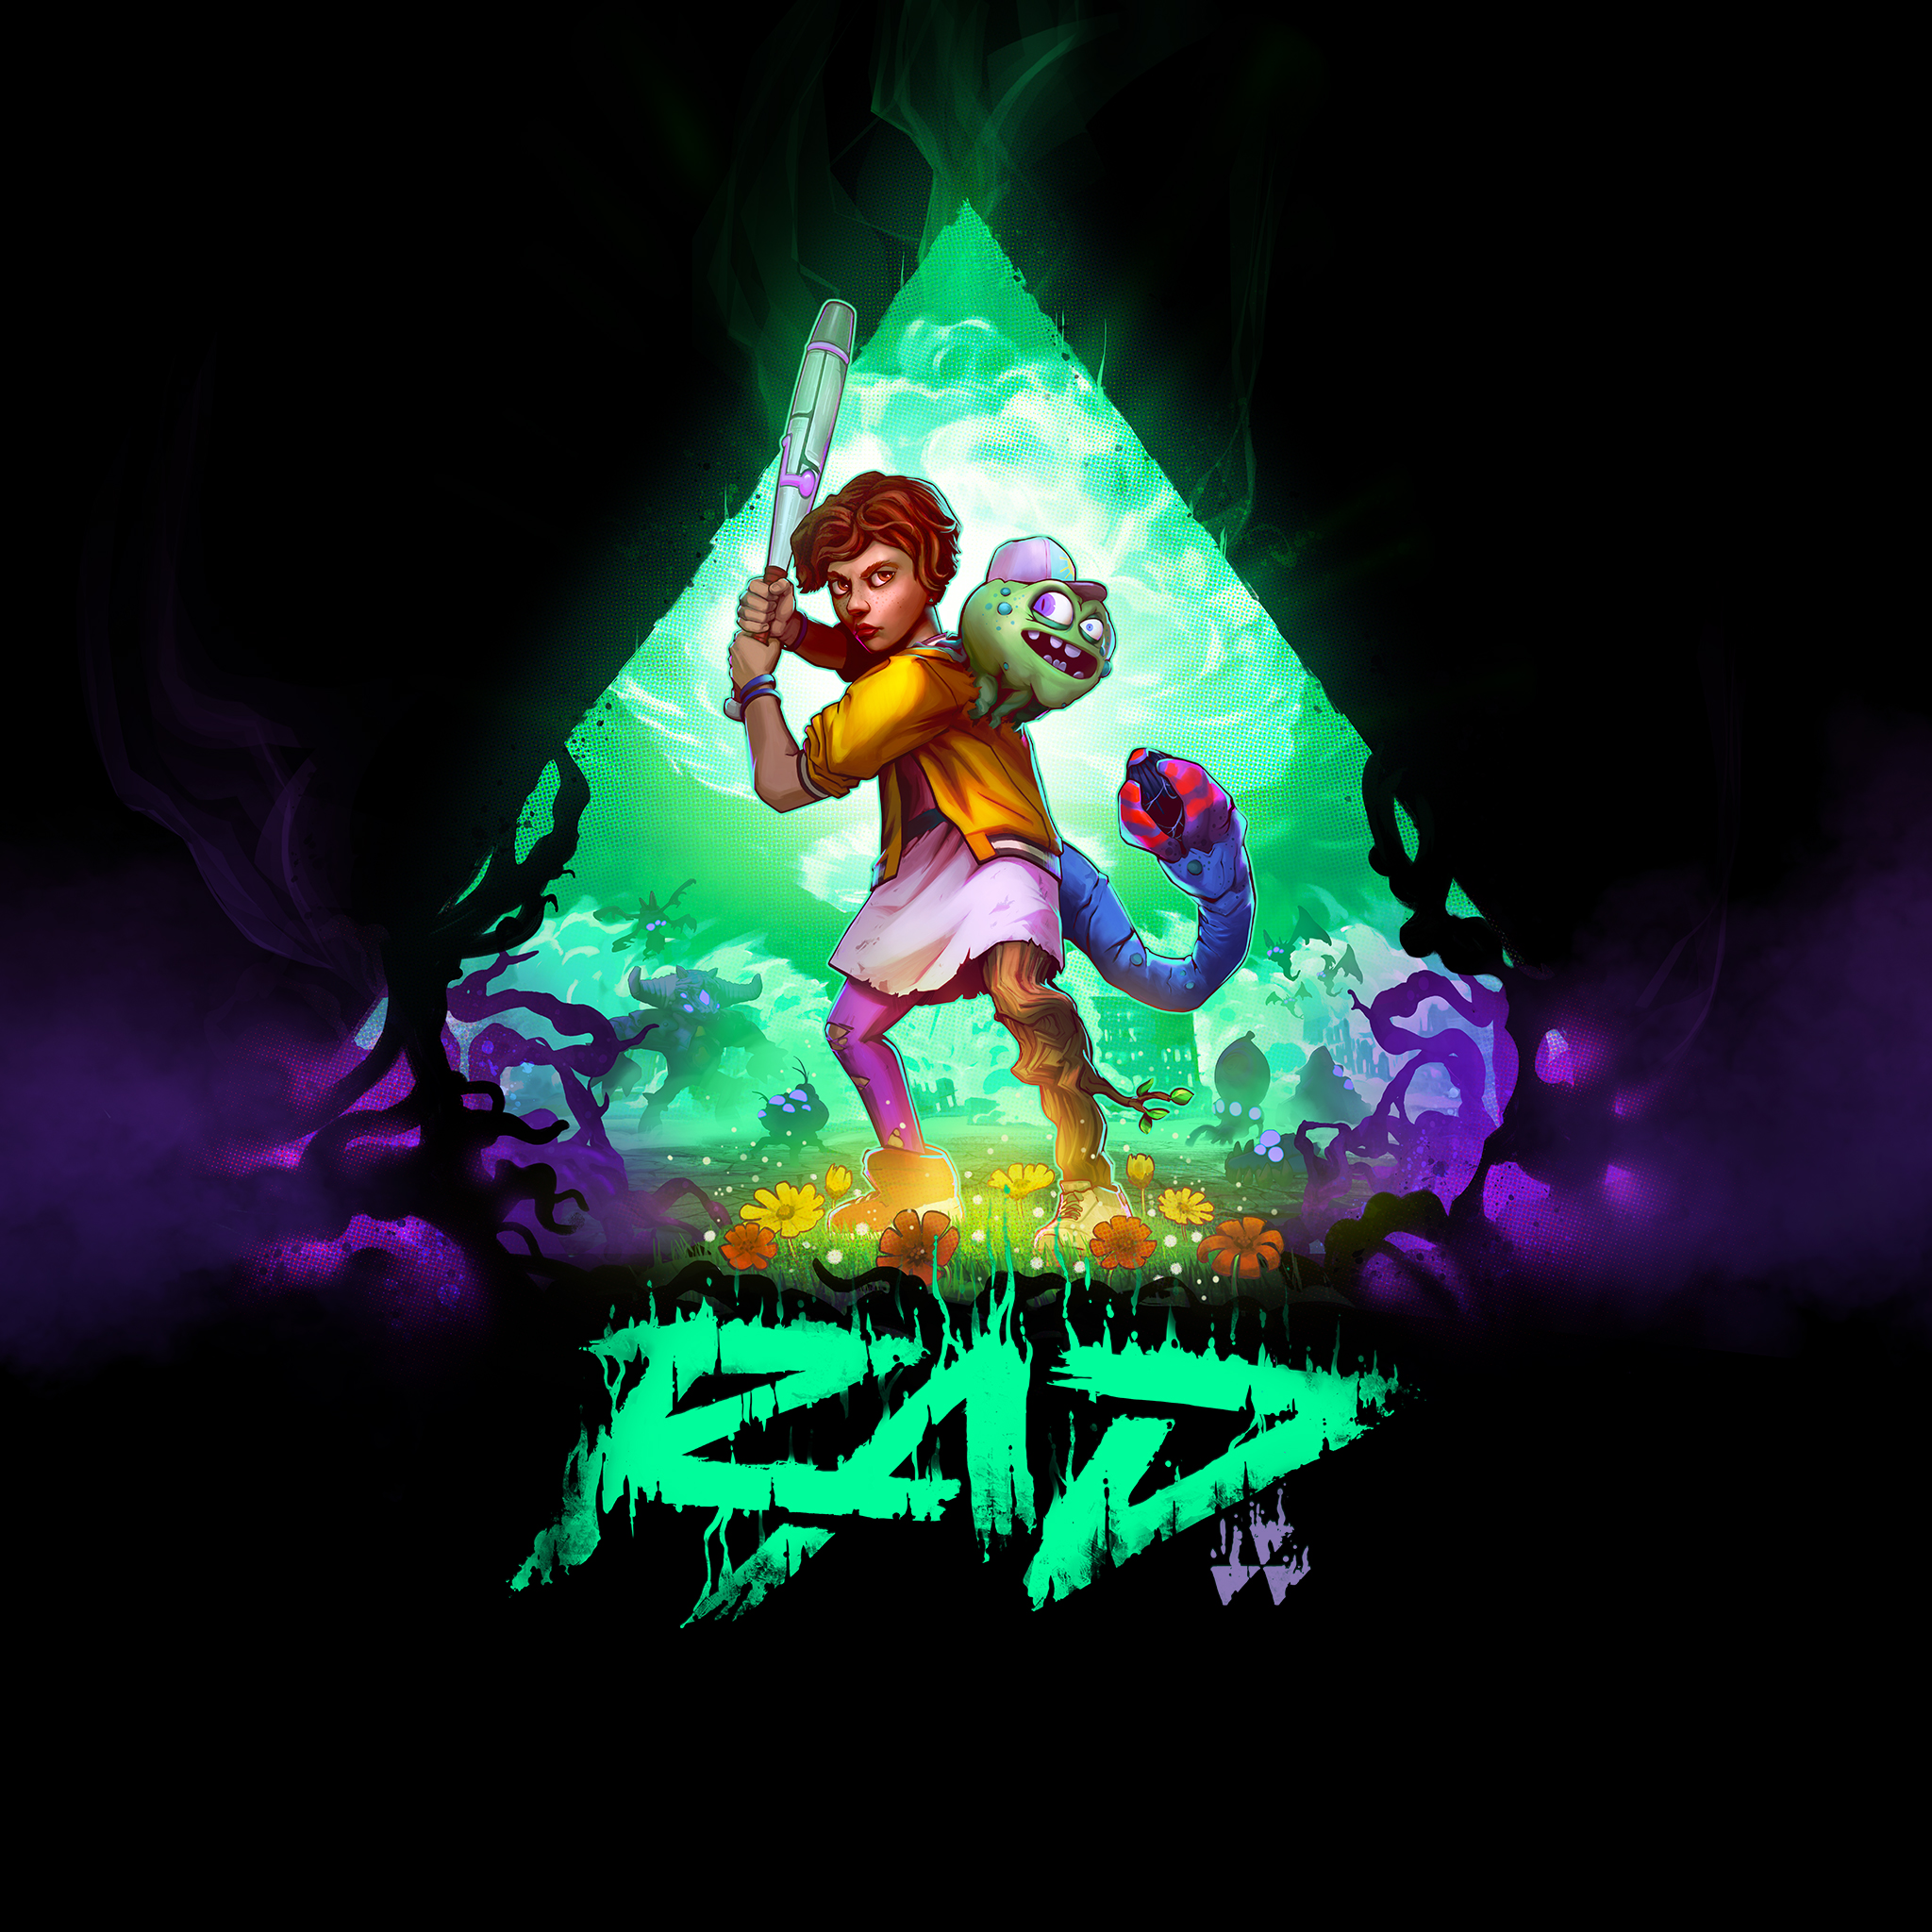 Thumbnail of RAD on PS4